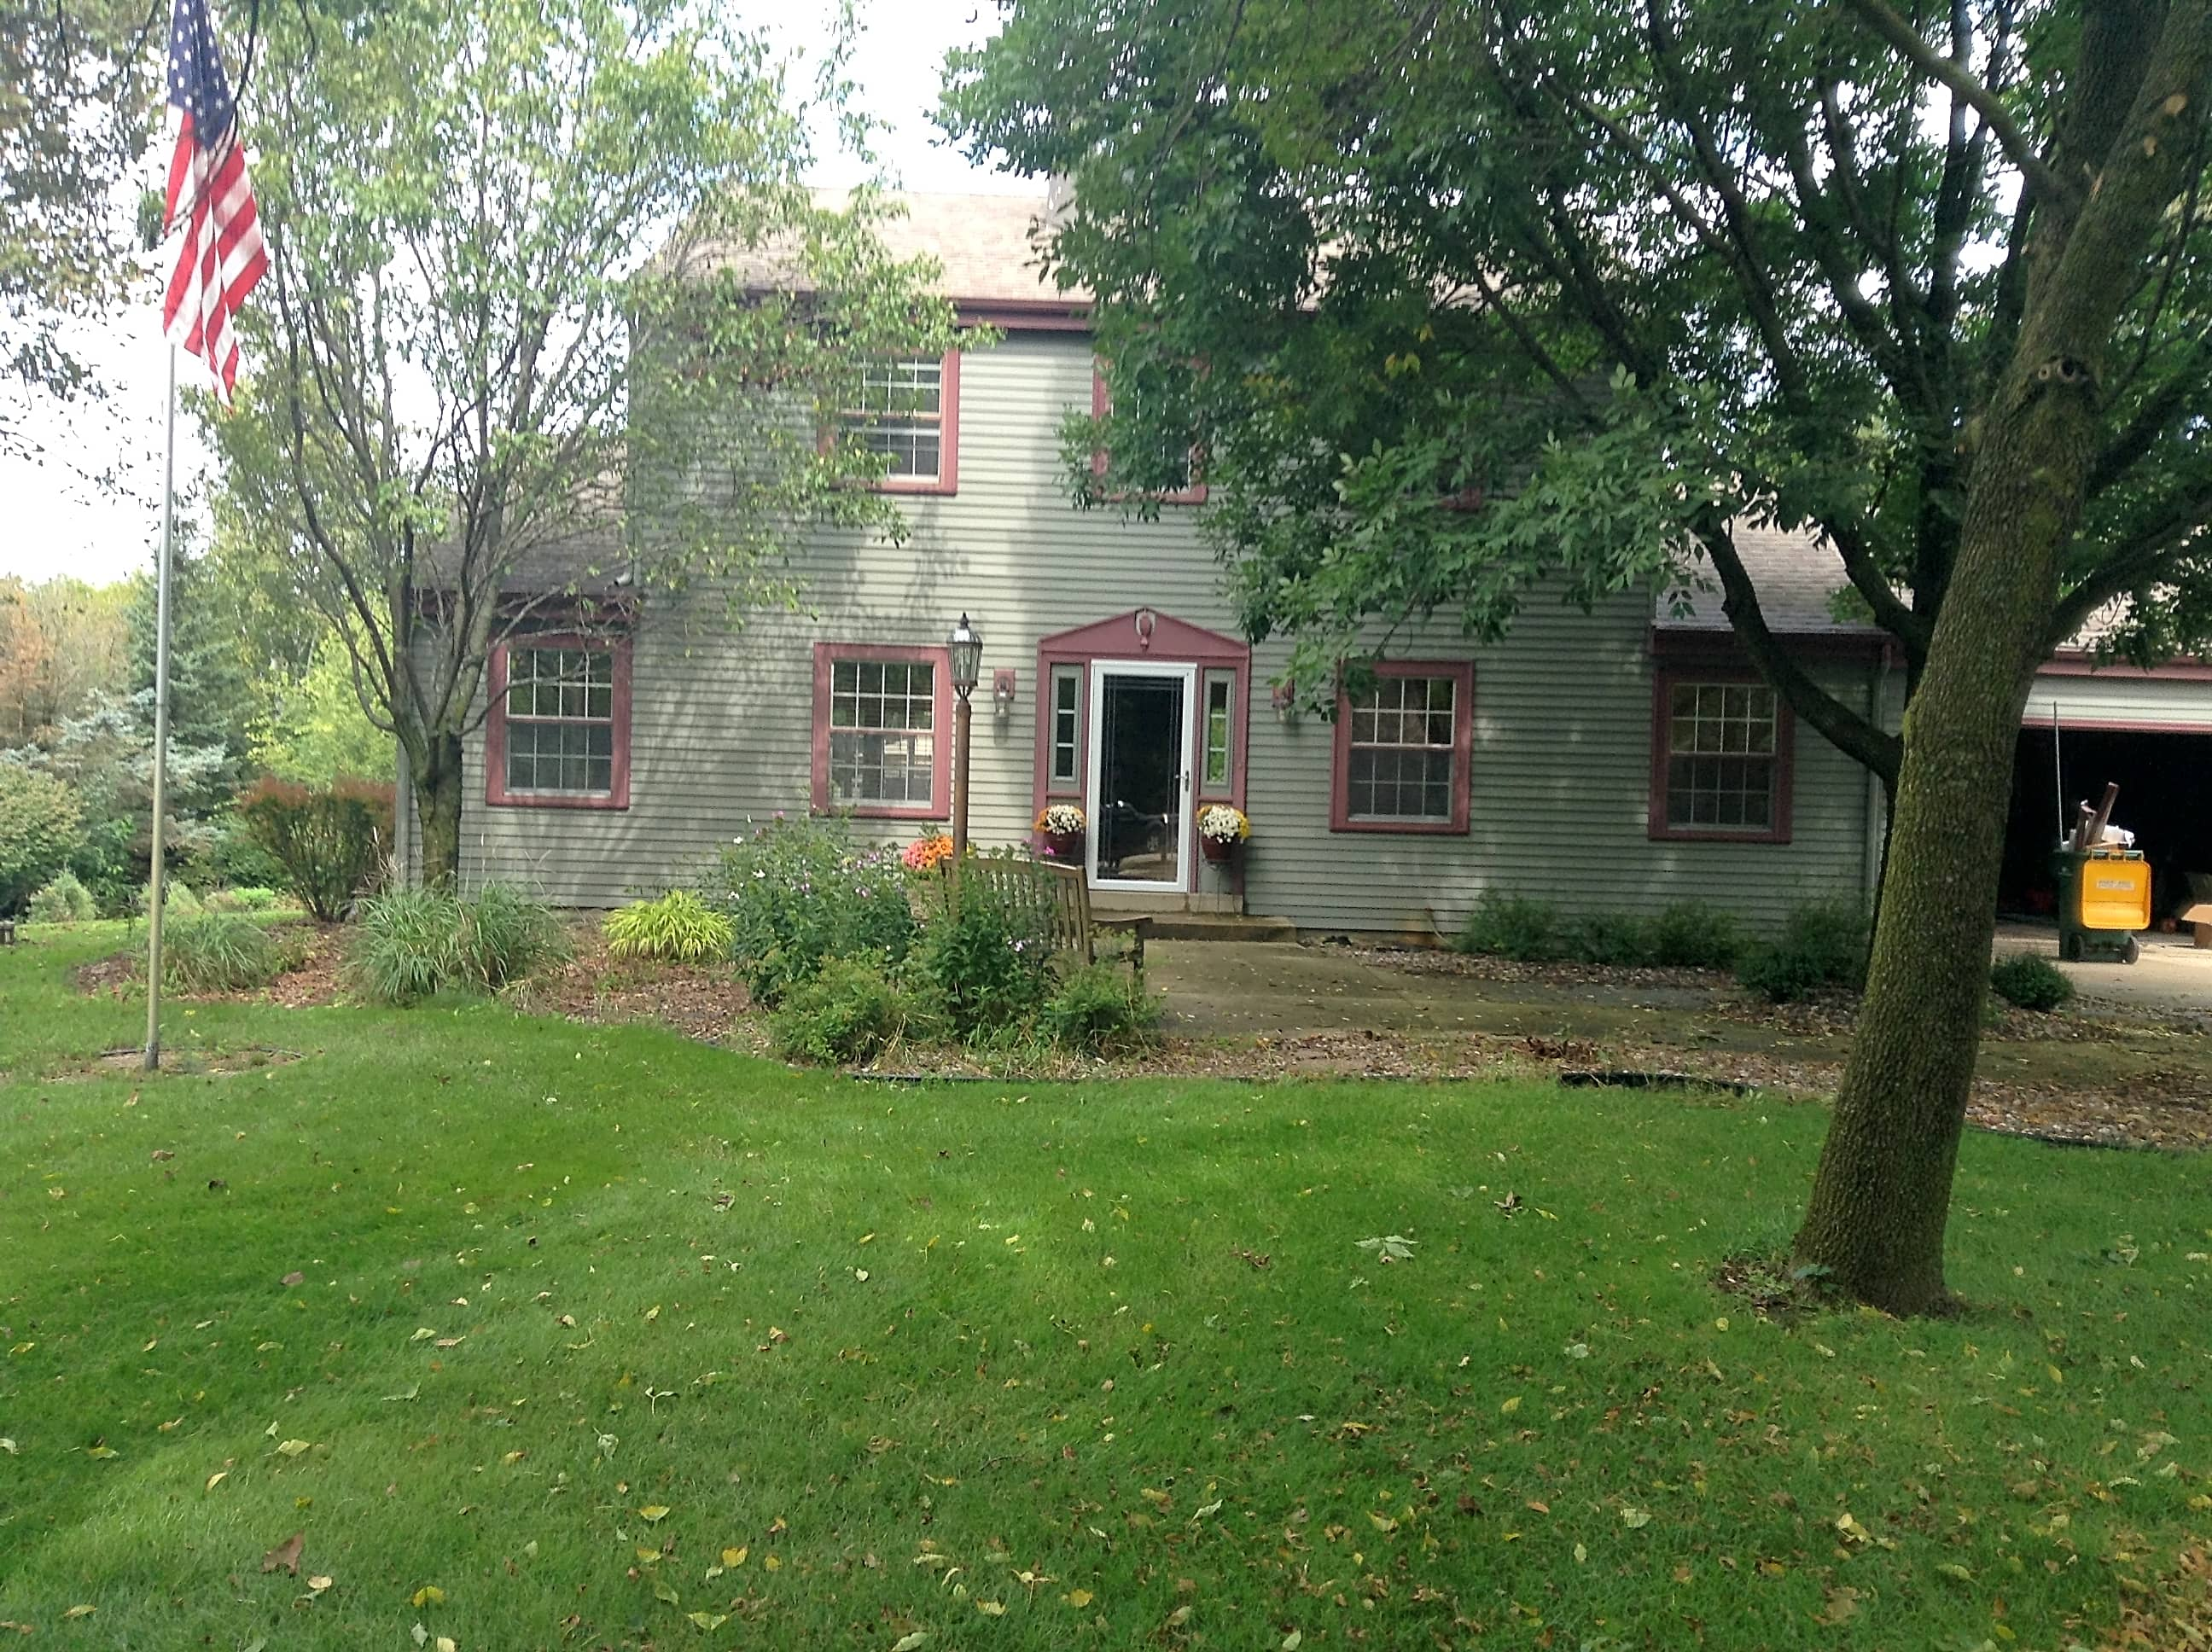 House for Rent in Mukwonago